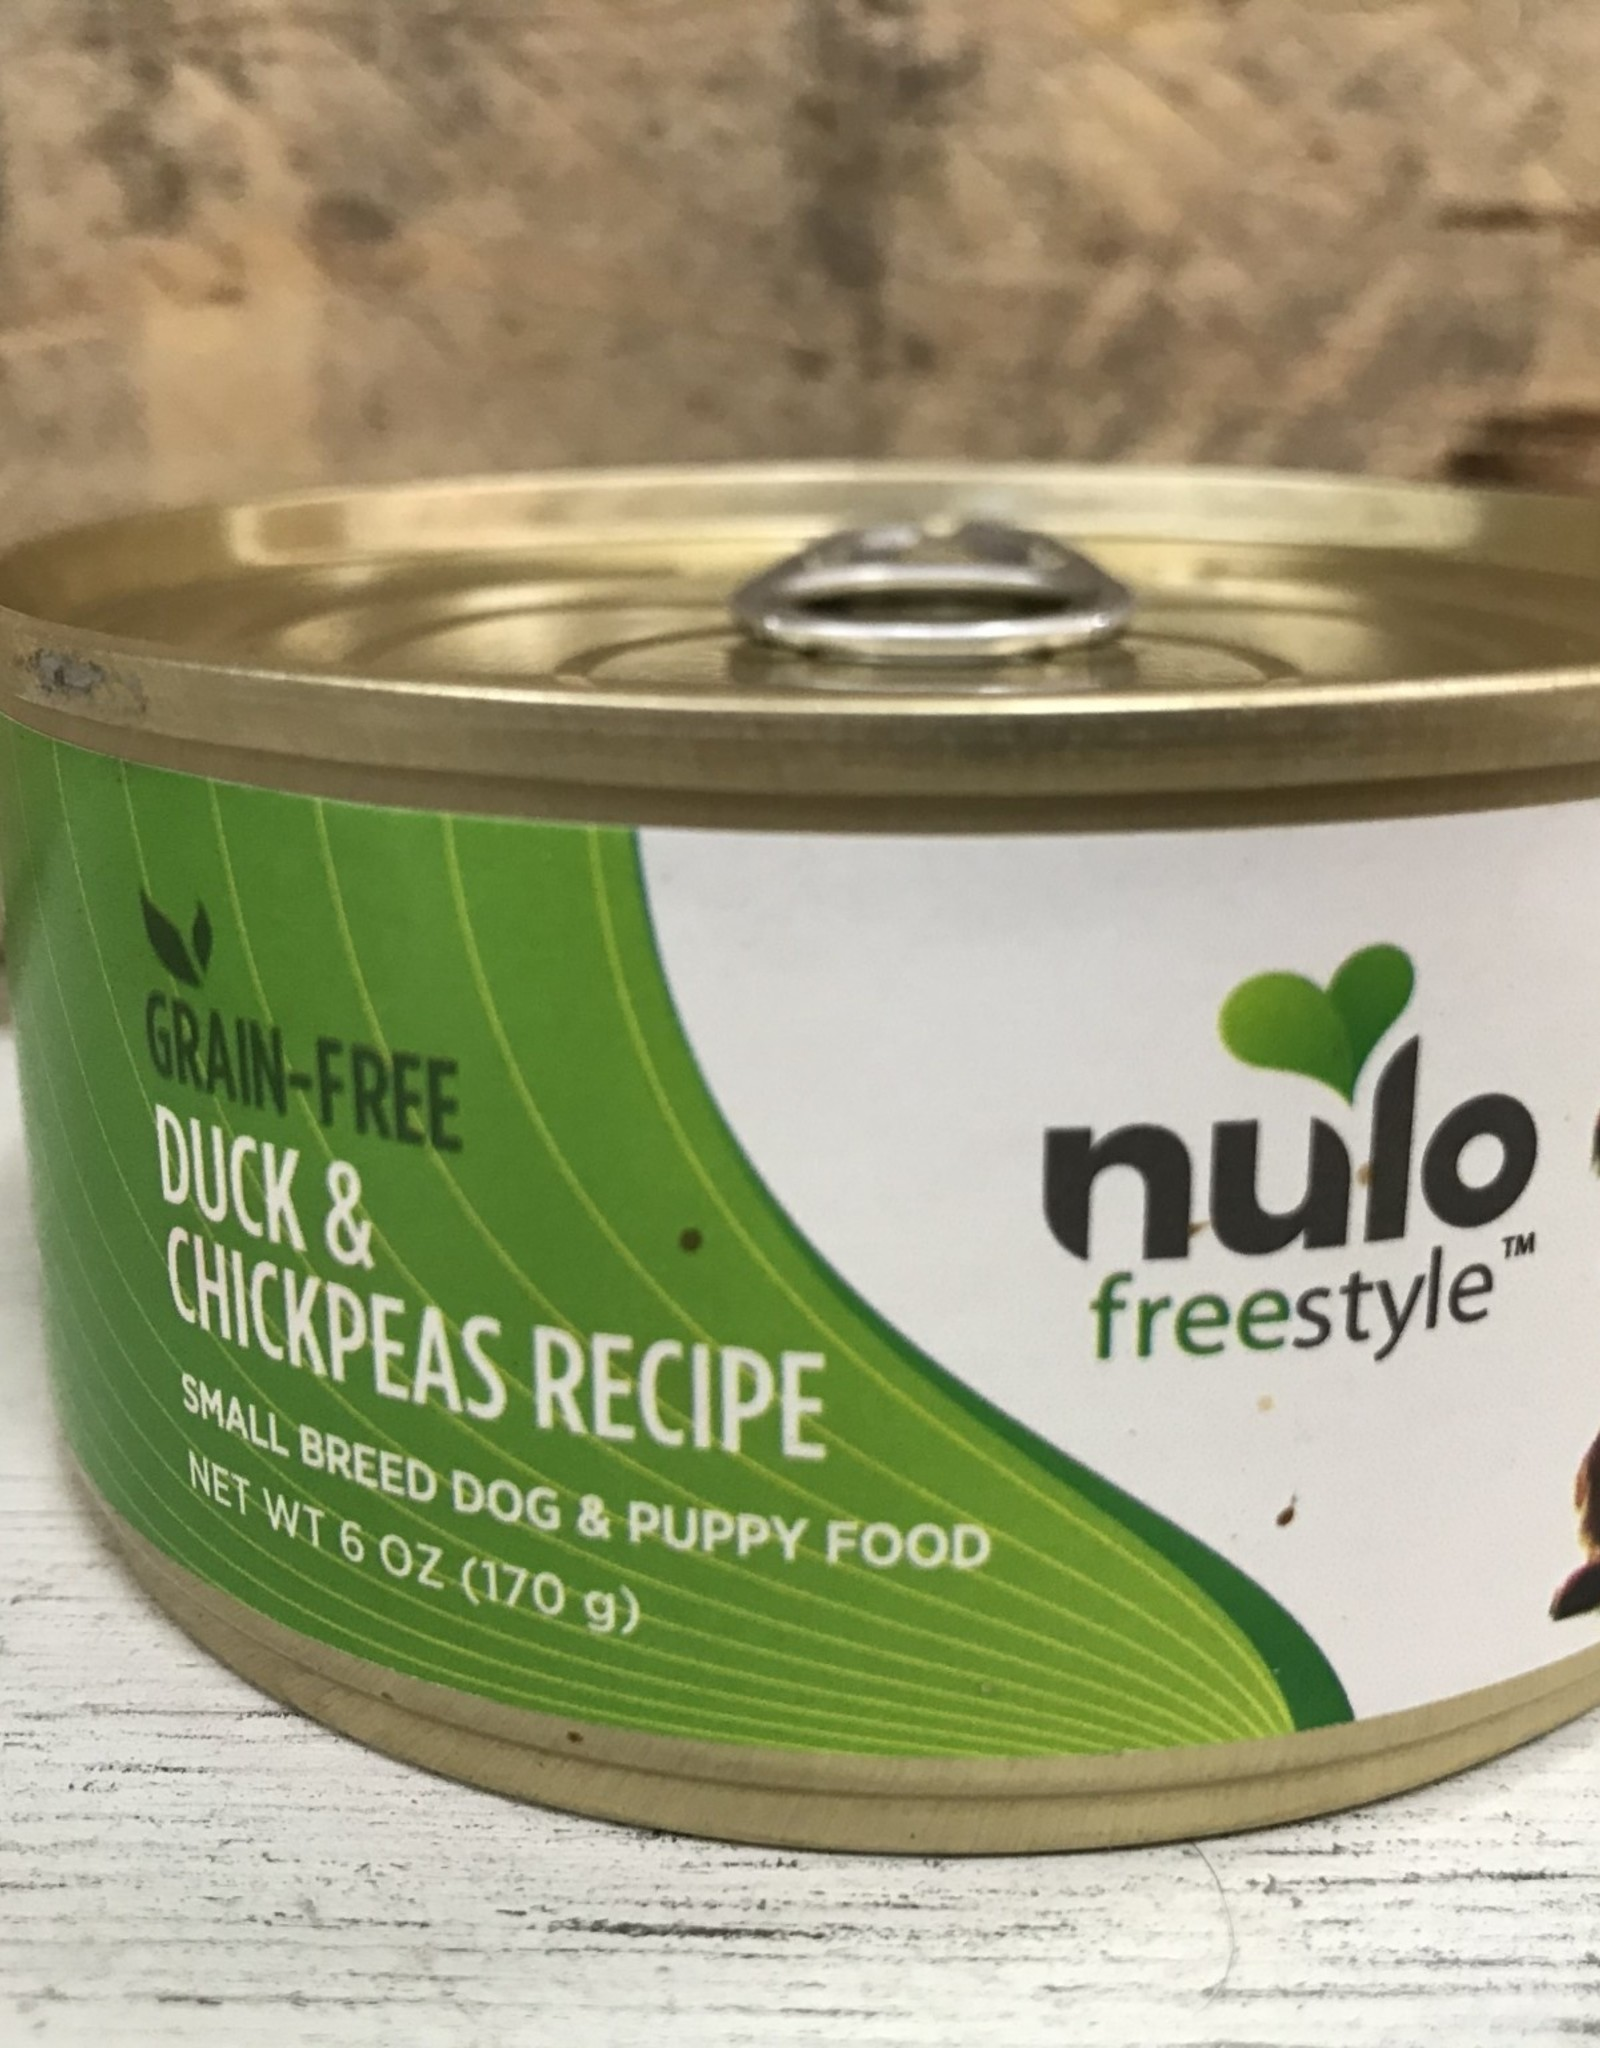 Nulo Nulo FreeStyle 6oz Grain Free Small Breed Dog Duck & Chickpea